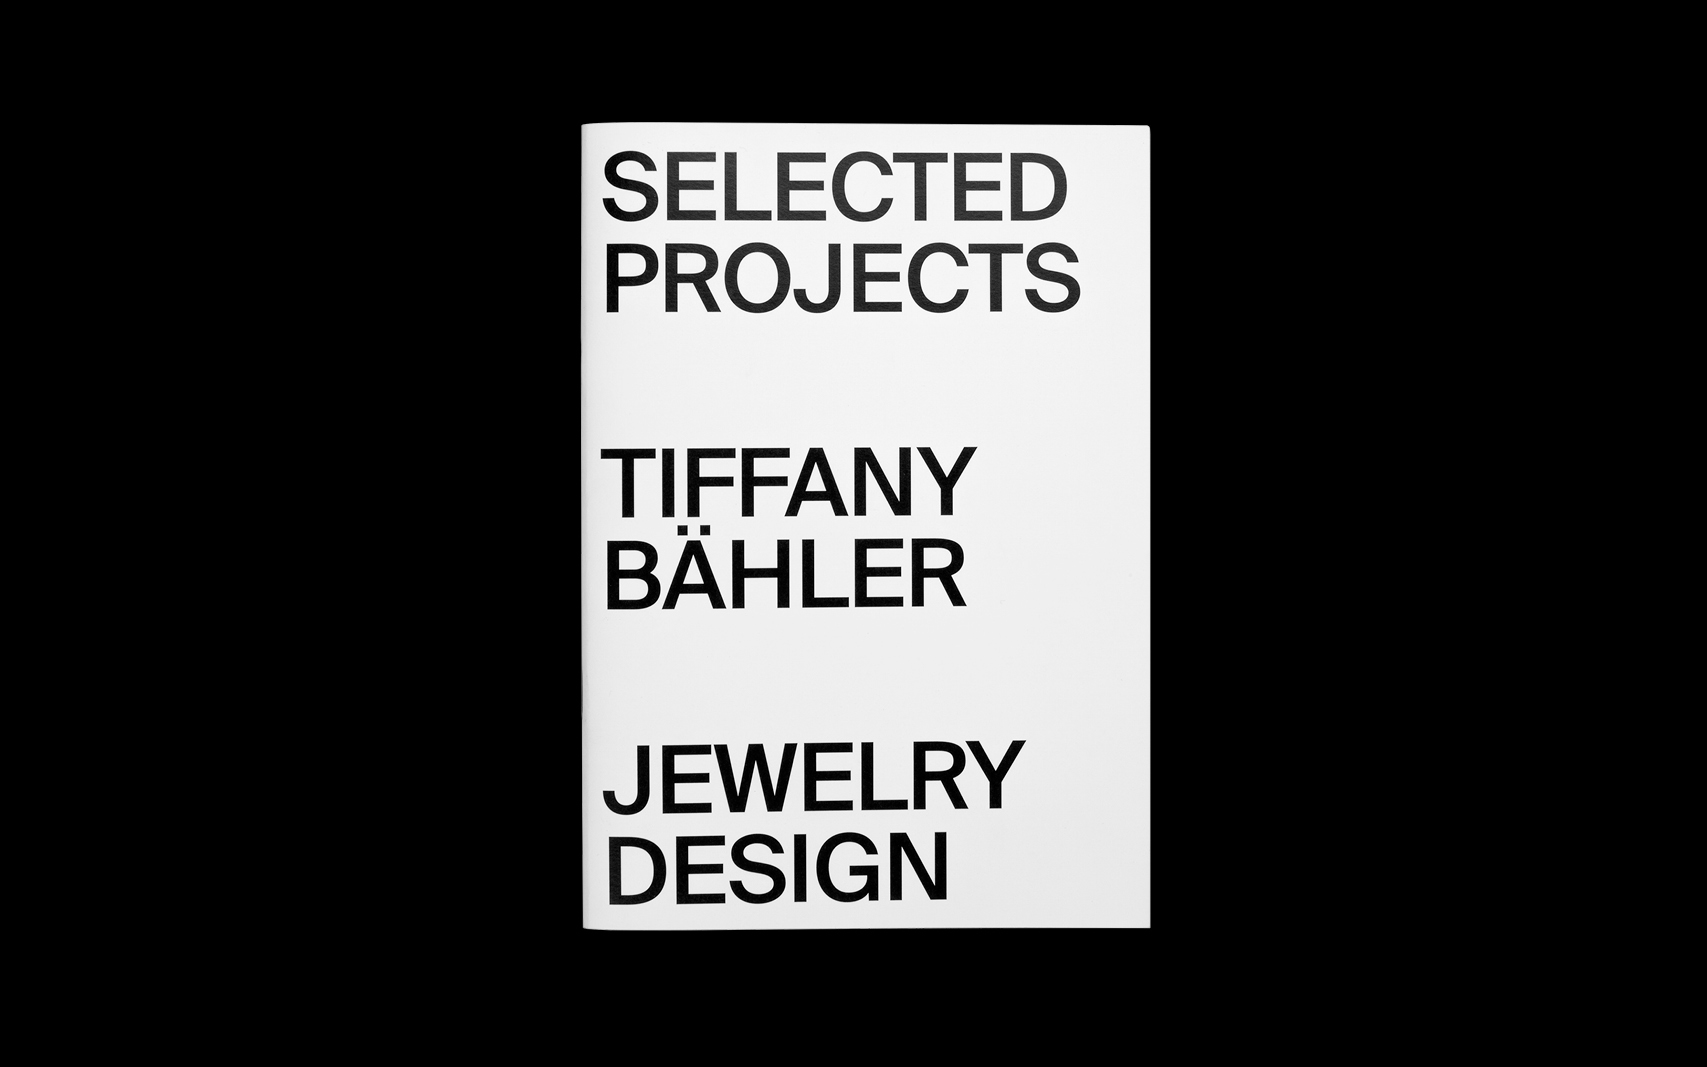 TB selected projects book 002 00